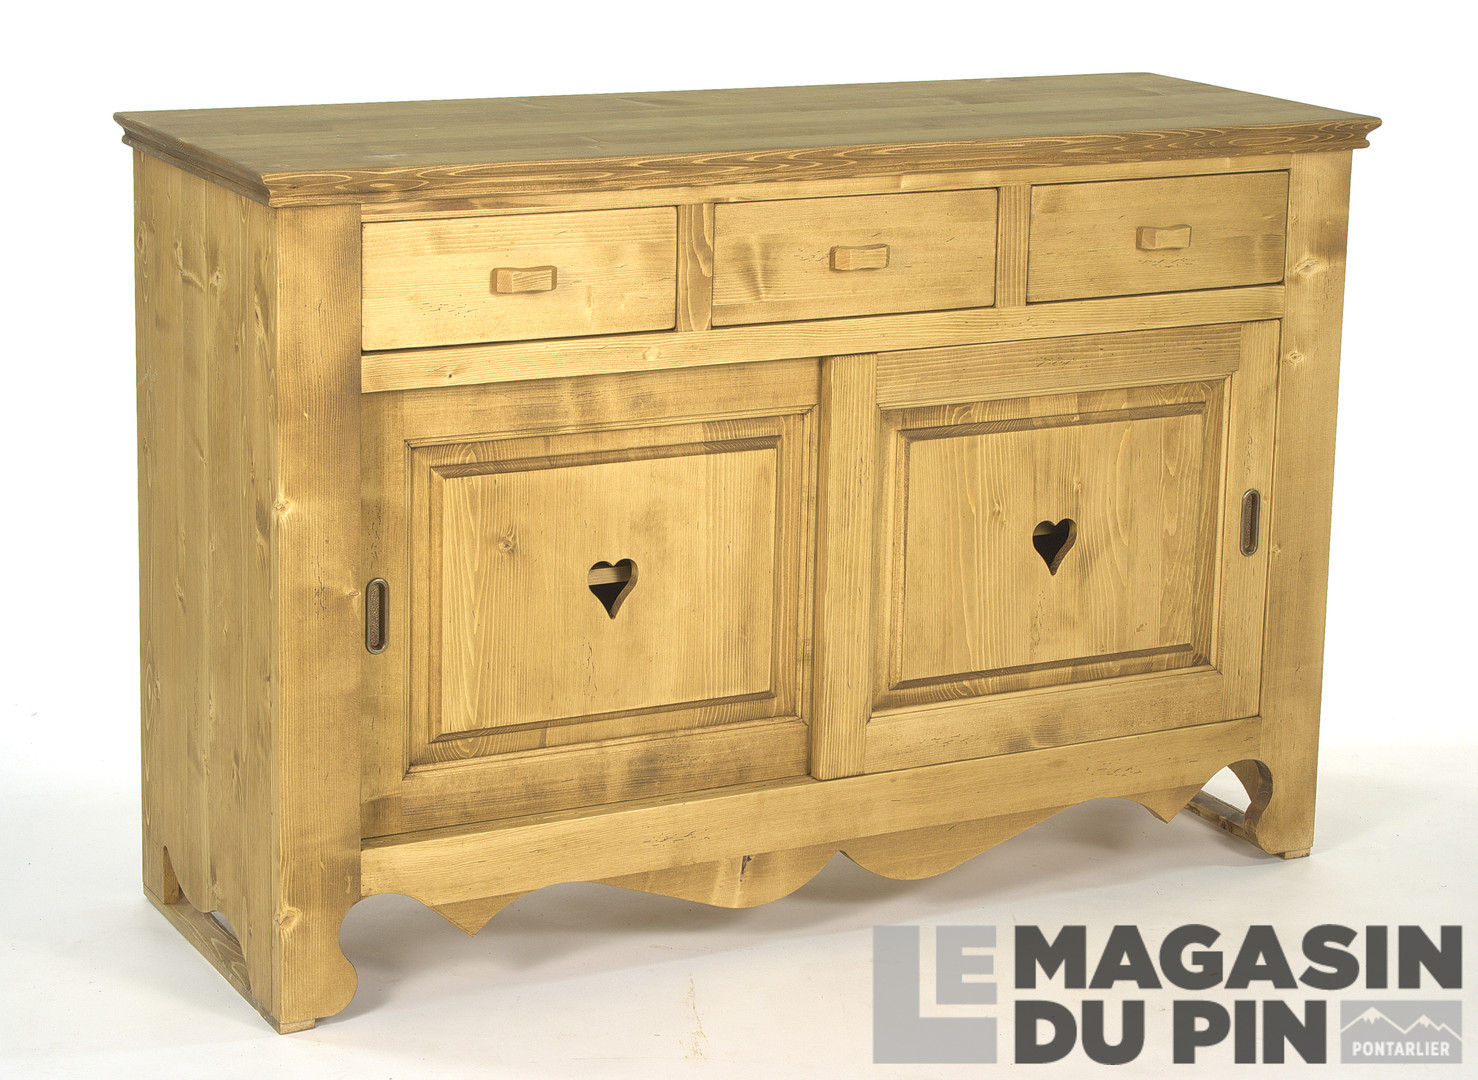 meubles en pin massif collection chamonix le magasin du pin. Black Bedroom Furniture Sets. Home Design Ideas